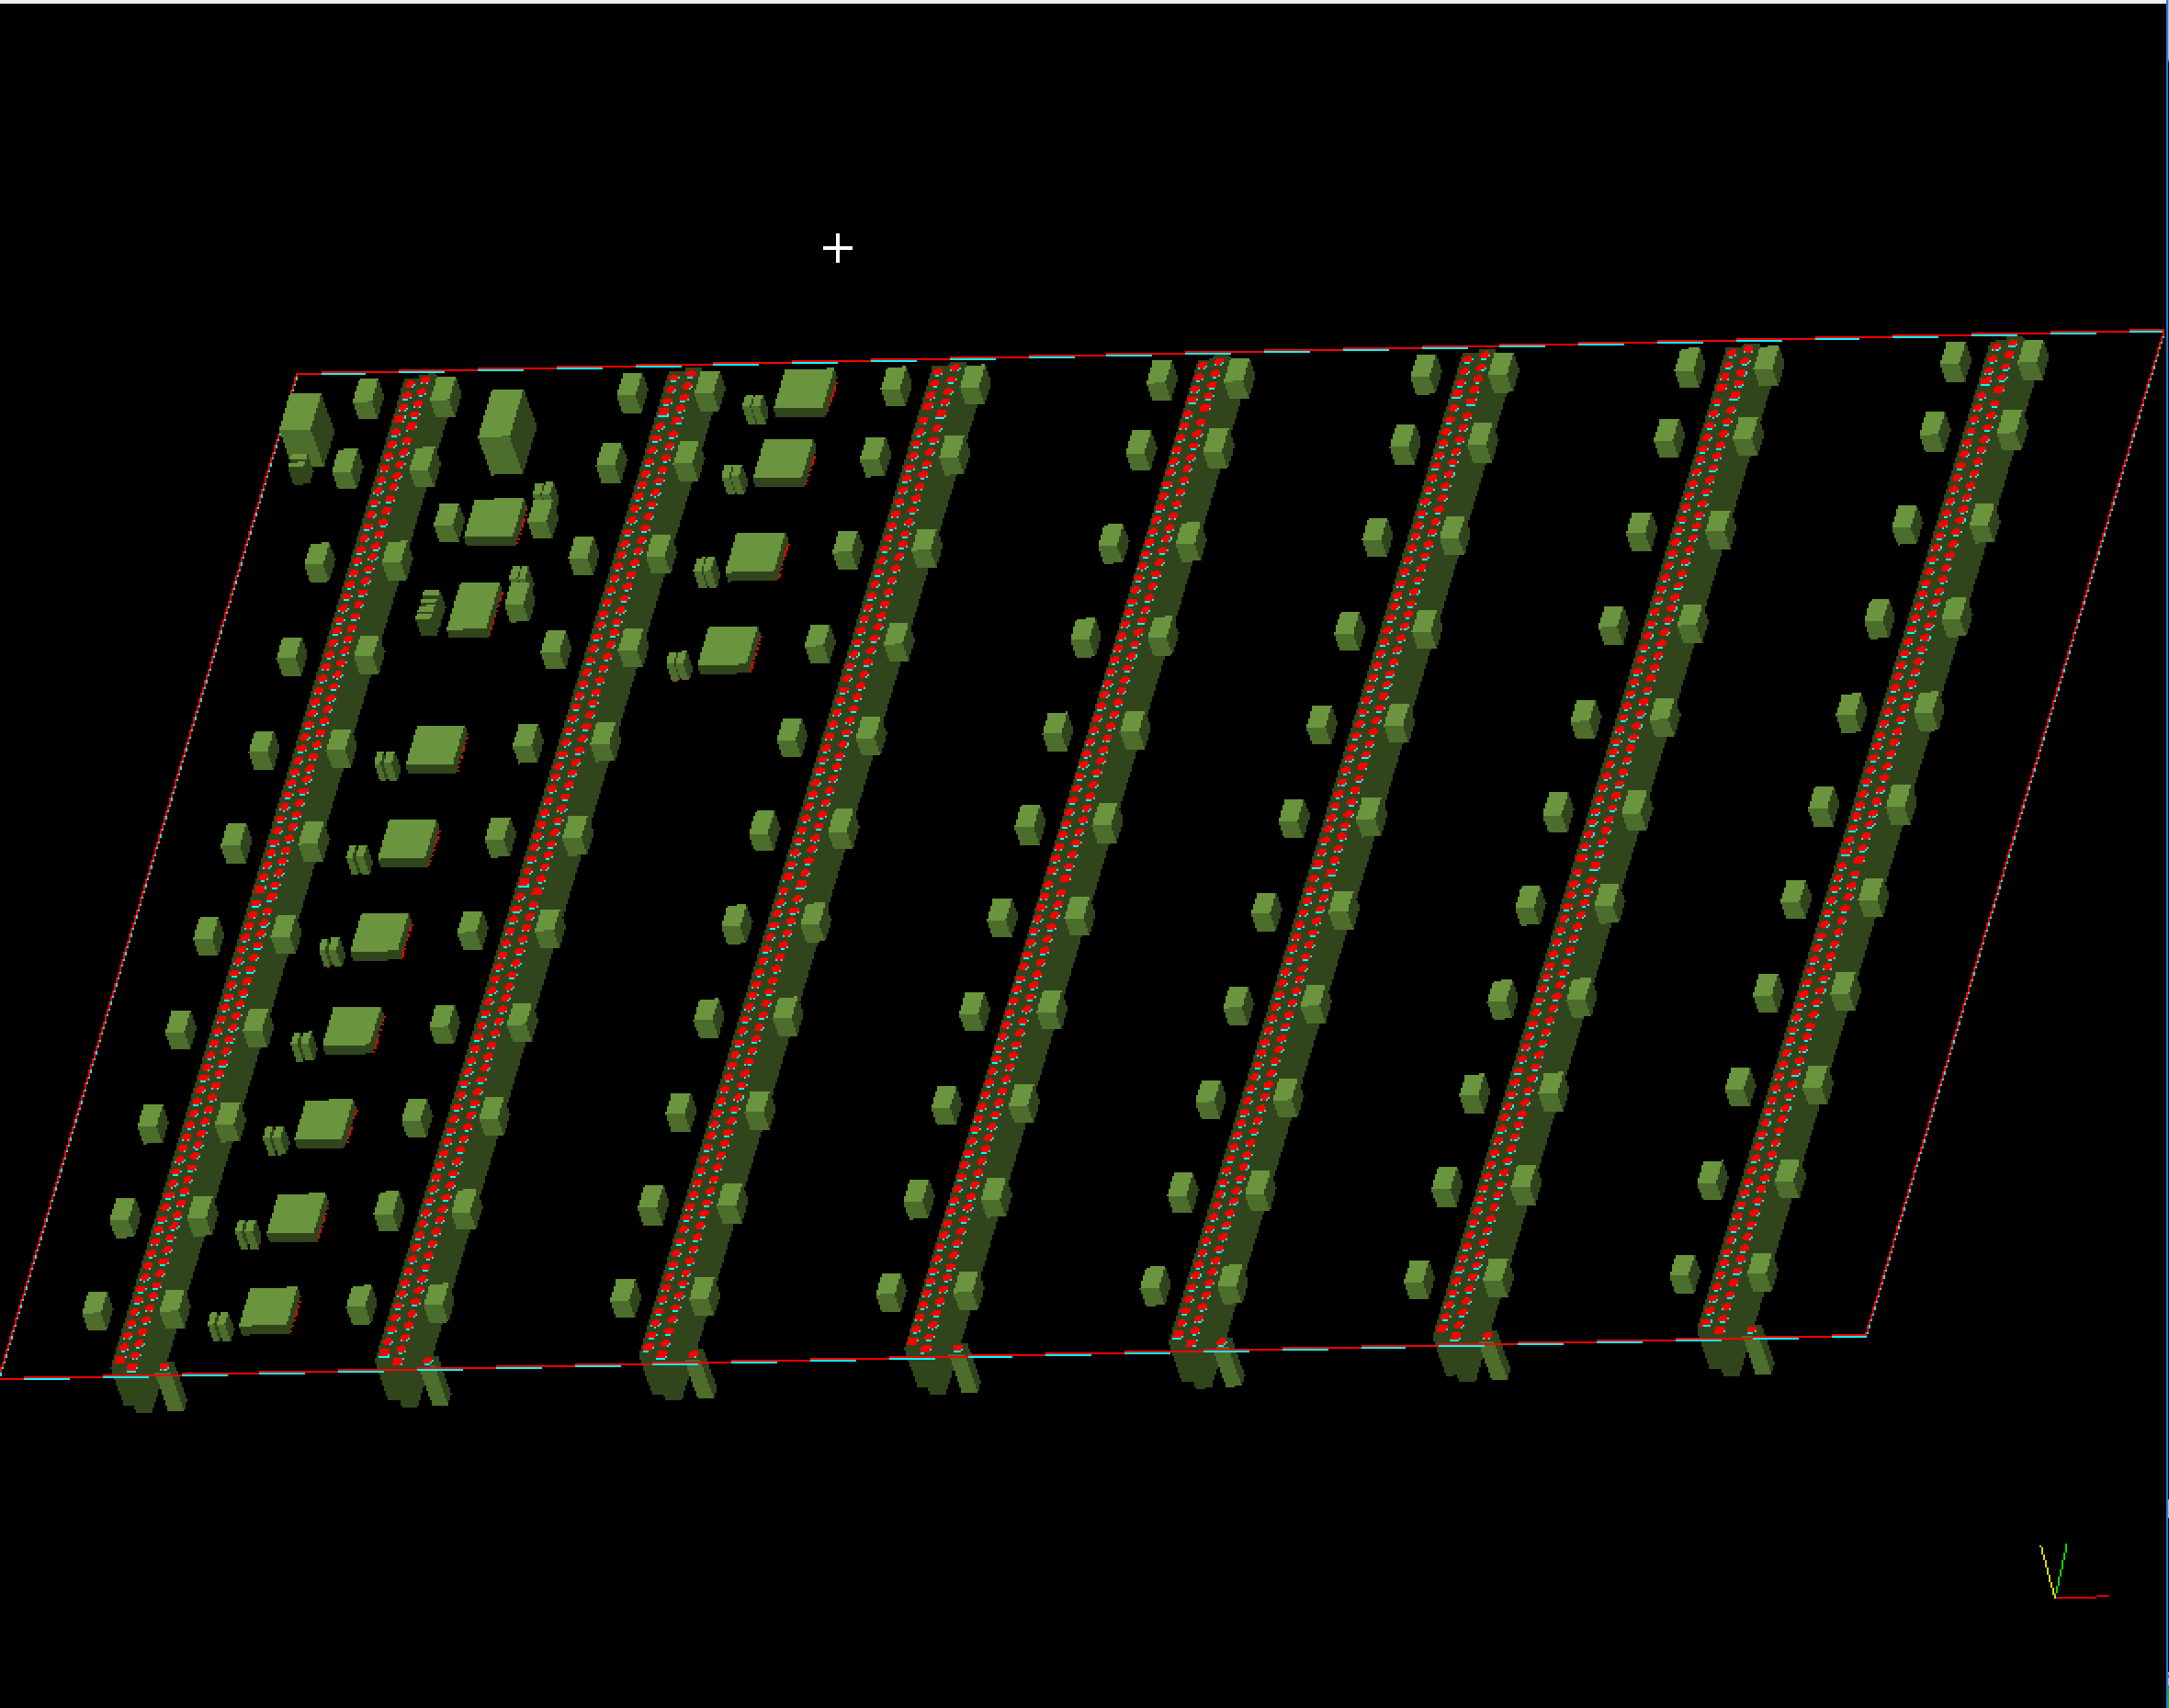 3D Board Layout View